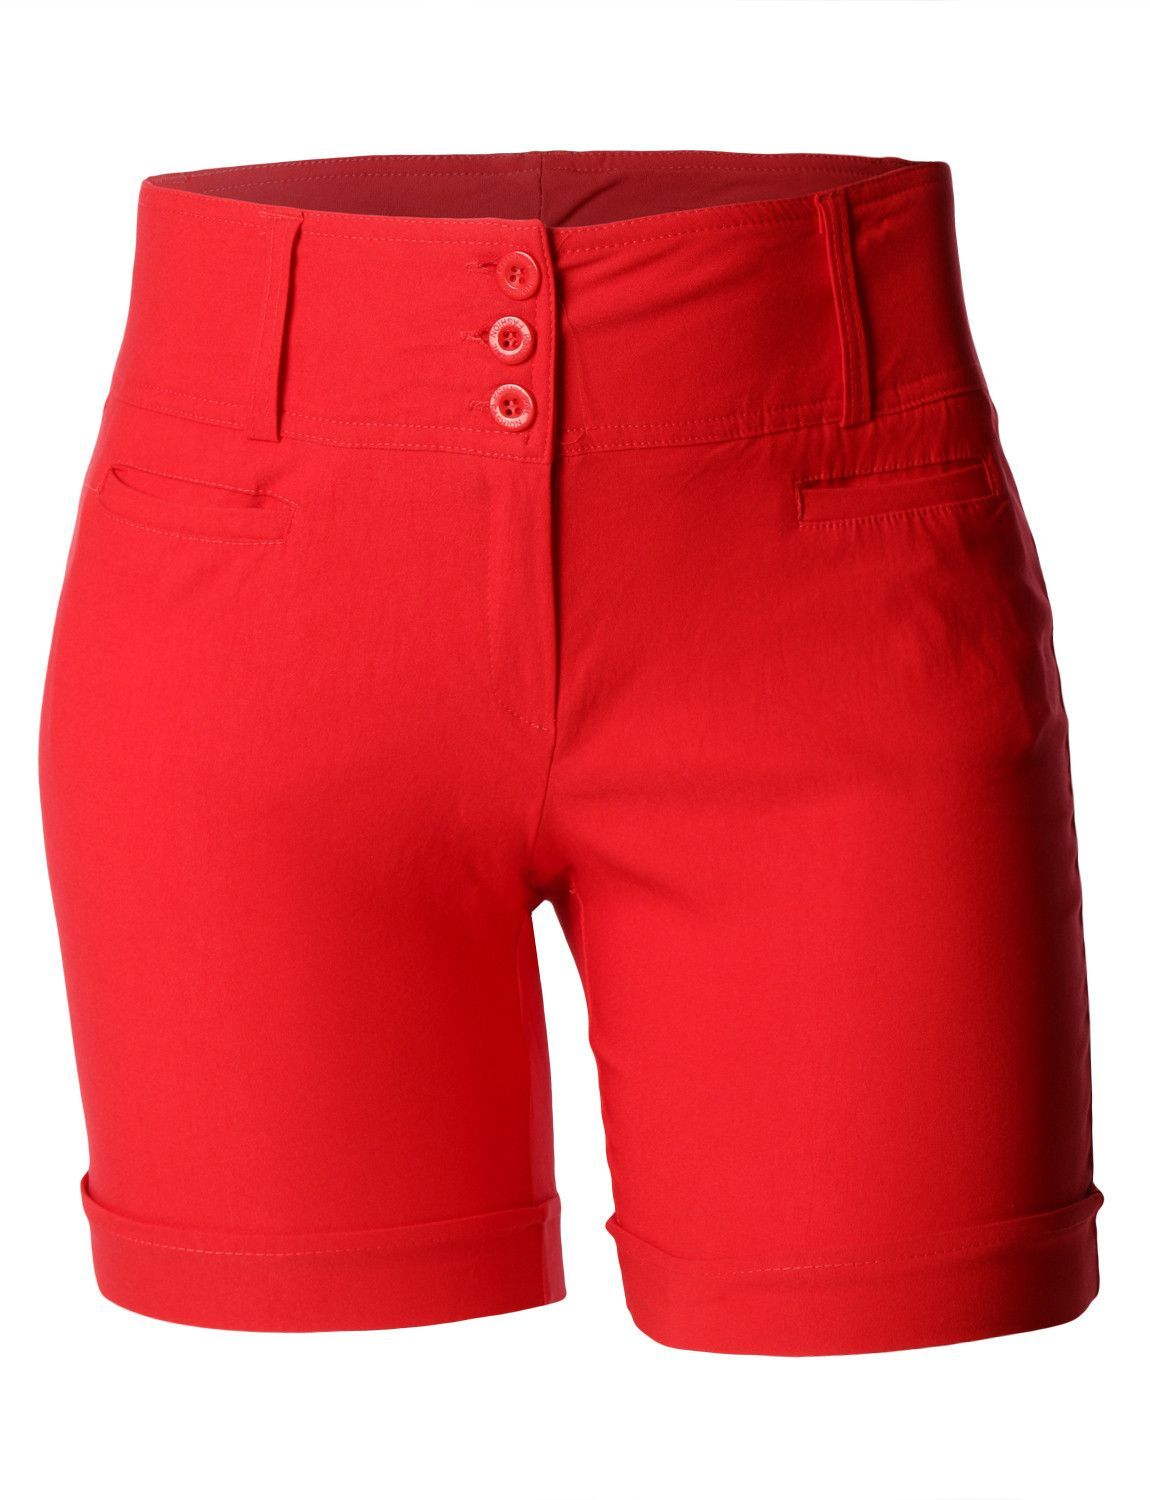 09d4f71371ee LE3NO Womens Plus Size High Waisted Bermuda Shorts with Stretch ...